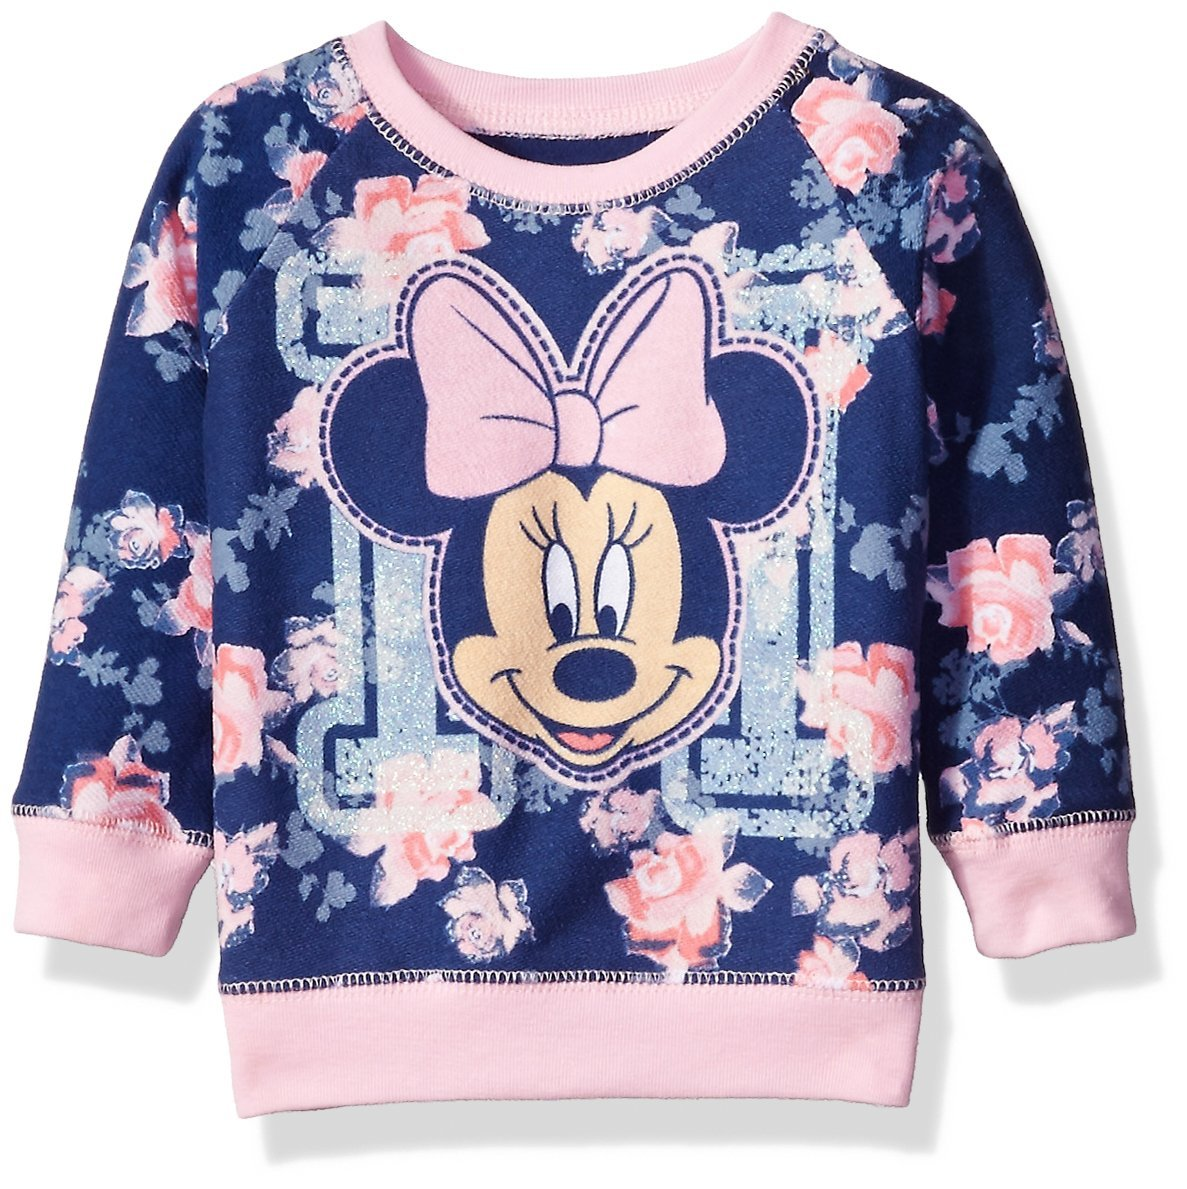 Disney Girls' Minnie Mouse Floral All Over Print French Terry Sweatshirt Freeze Children's Apparel ZCST533-2W61-2T01